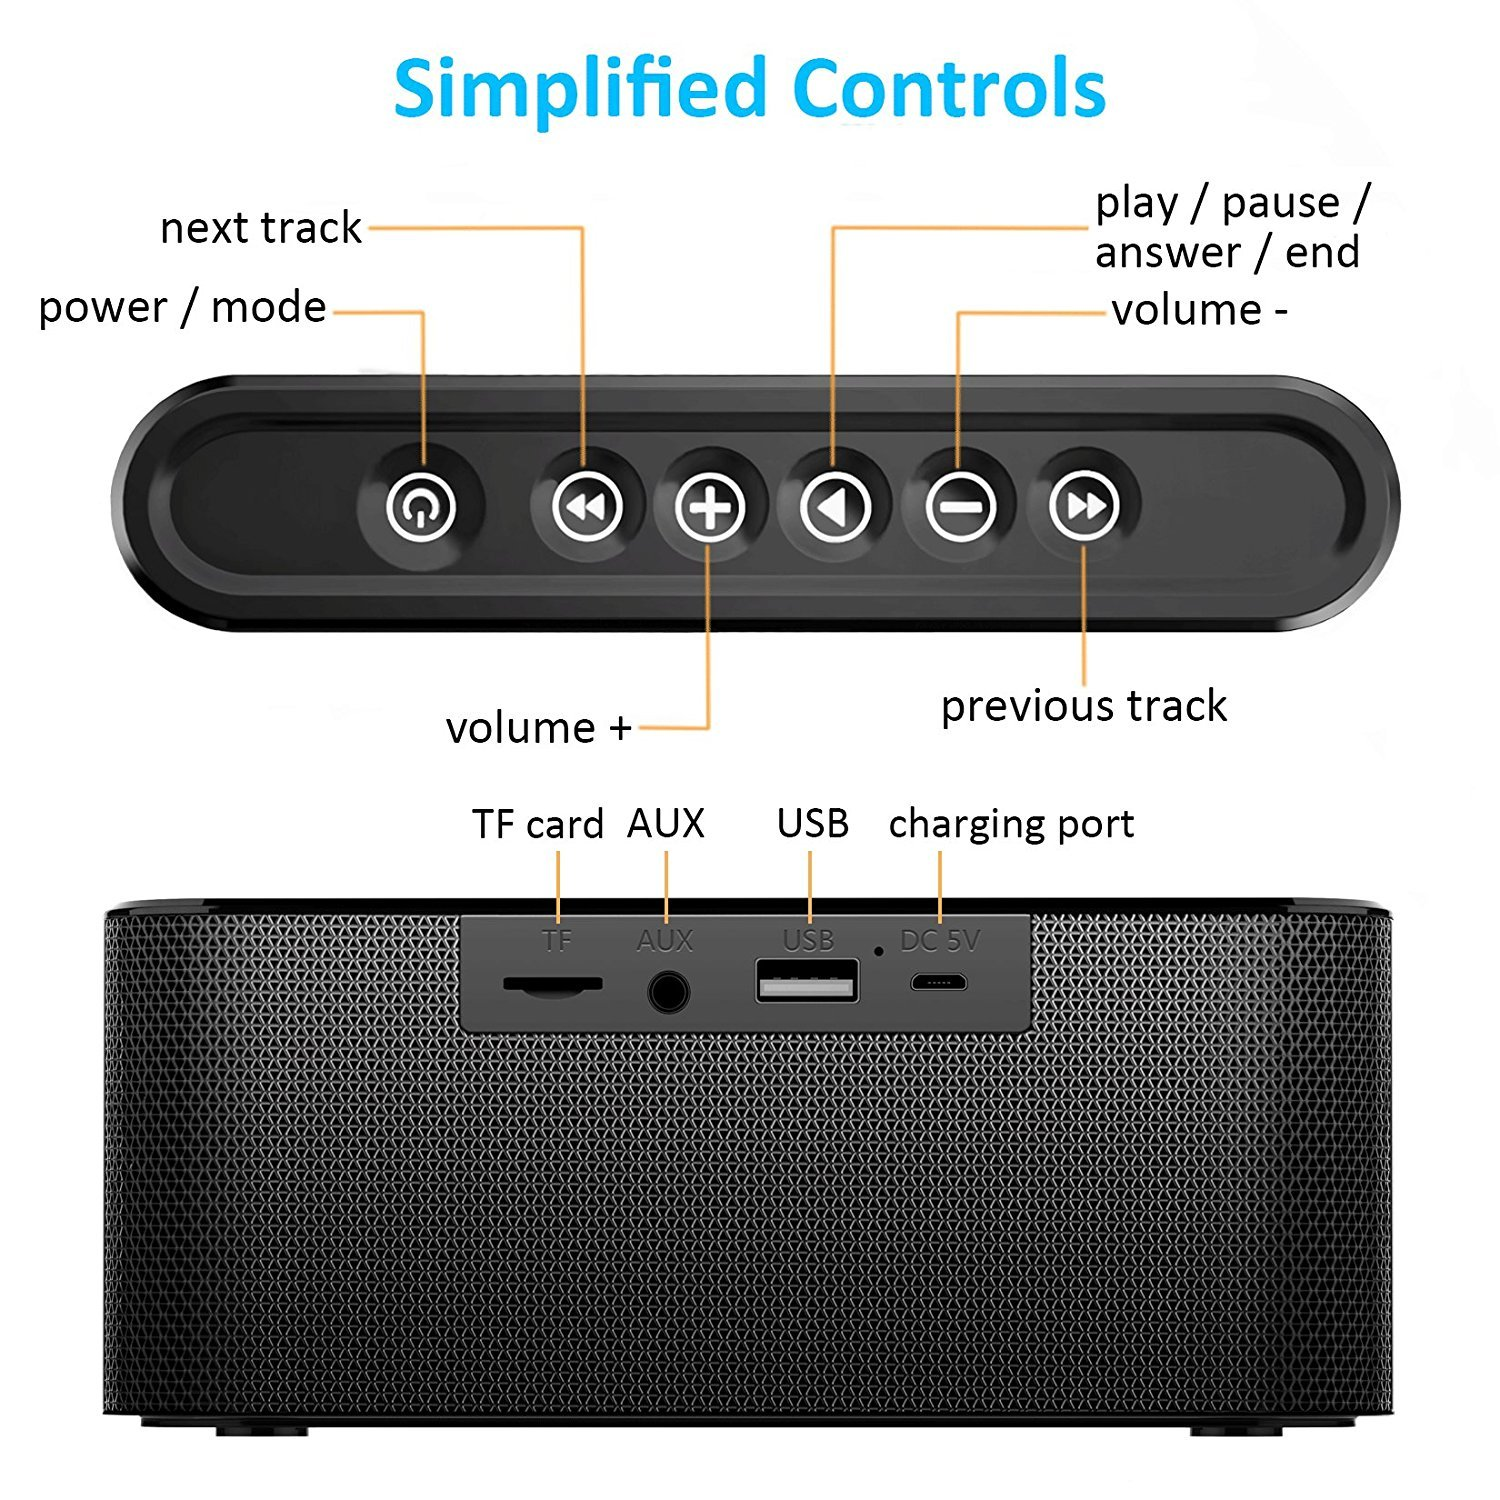 Bluetooth Speakers, 6W Touch Metal Speakers, Mini Portable Bluetooth 4.2 Wireless with Super Bass, Treble Stereo Subwoofer, Support TF Card, USB Disk, 3.5mm AUX Input,Mobile Computer Accessories by WORENMI (Image #2)